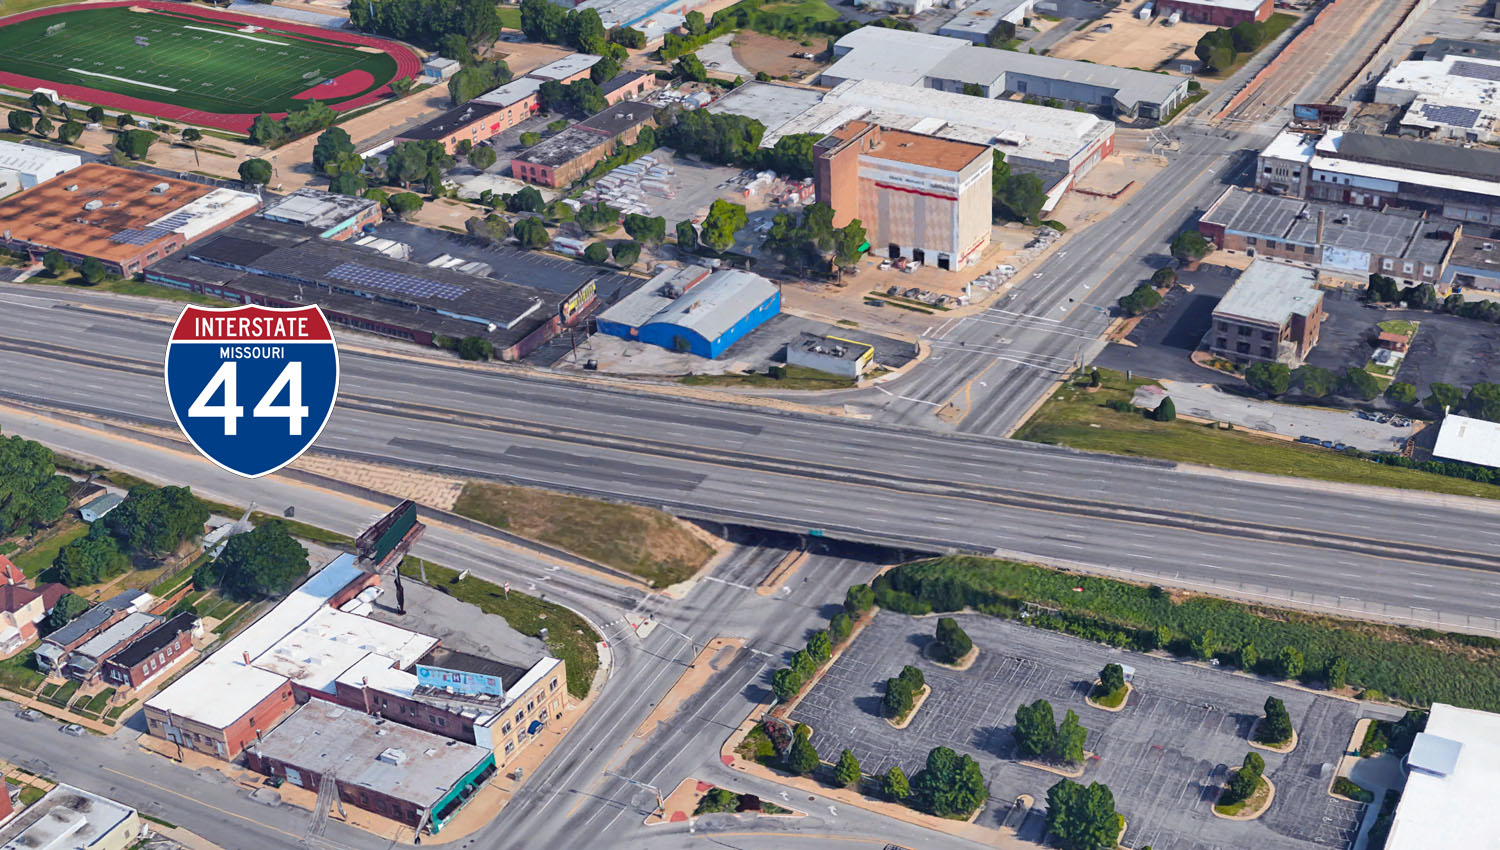 Expect Delays: I-44 Bridges Slated for Replacement Between Kingshighway and Grand